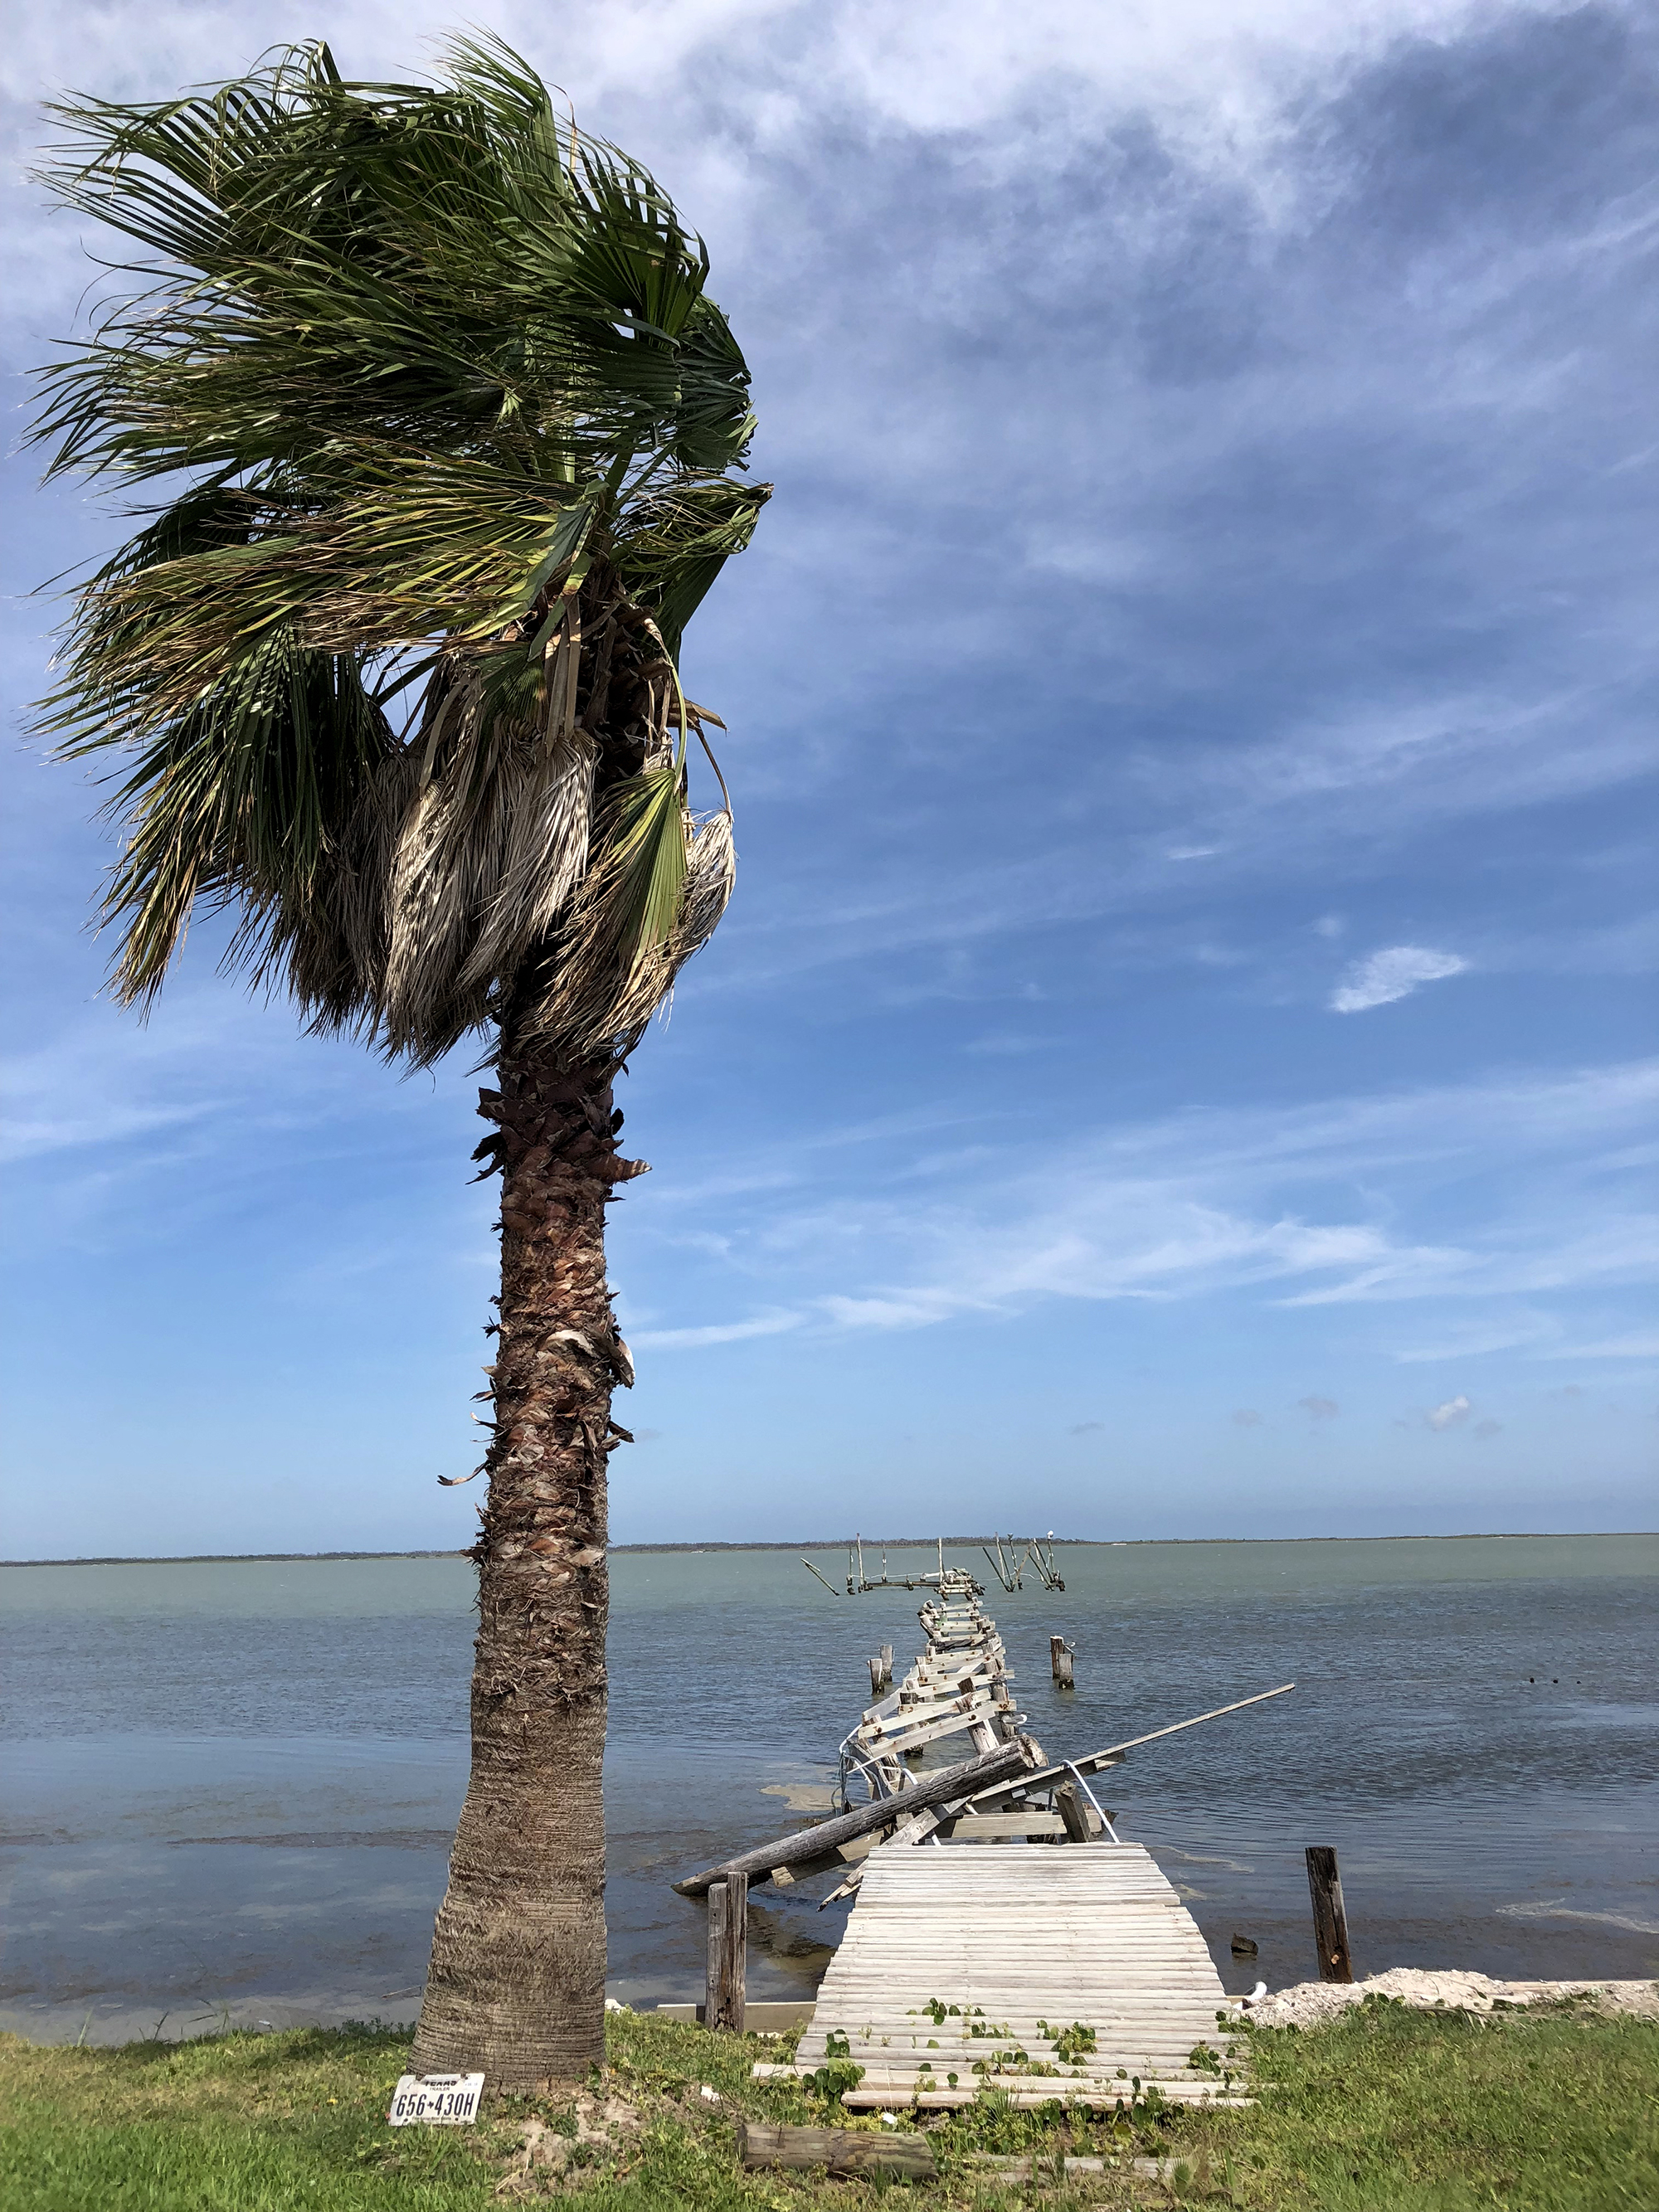 On the way to Padre, I drove thru Rockport, one of the hardest hit areas by Hurricane Harvey almost a year ago. While they have come so far, there was sadly still a lot of rebuilding to do. | Rockport Texas | June 2018